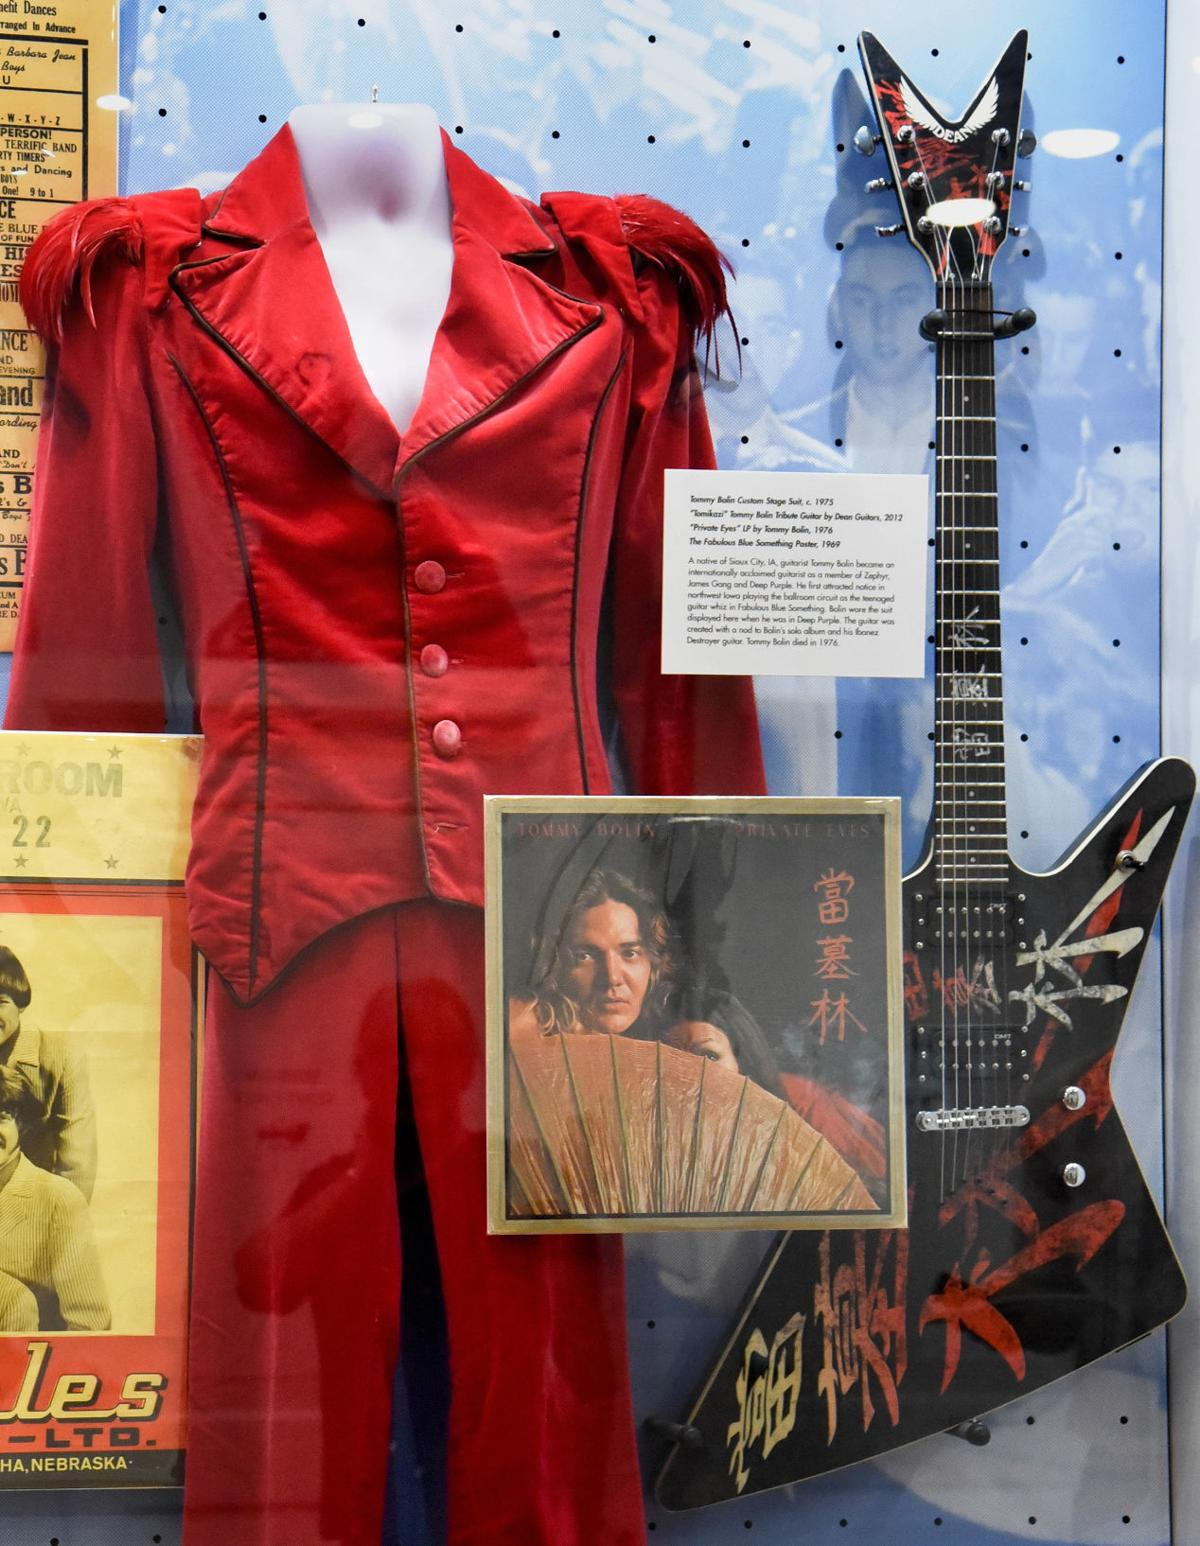 Iowa Rock 'n Roll Hall of Fame Museum